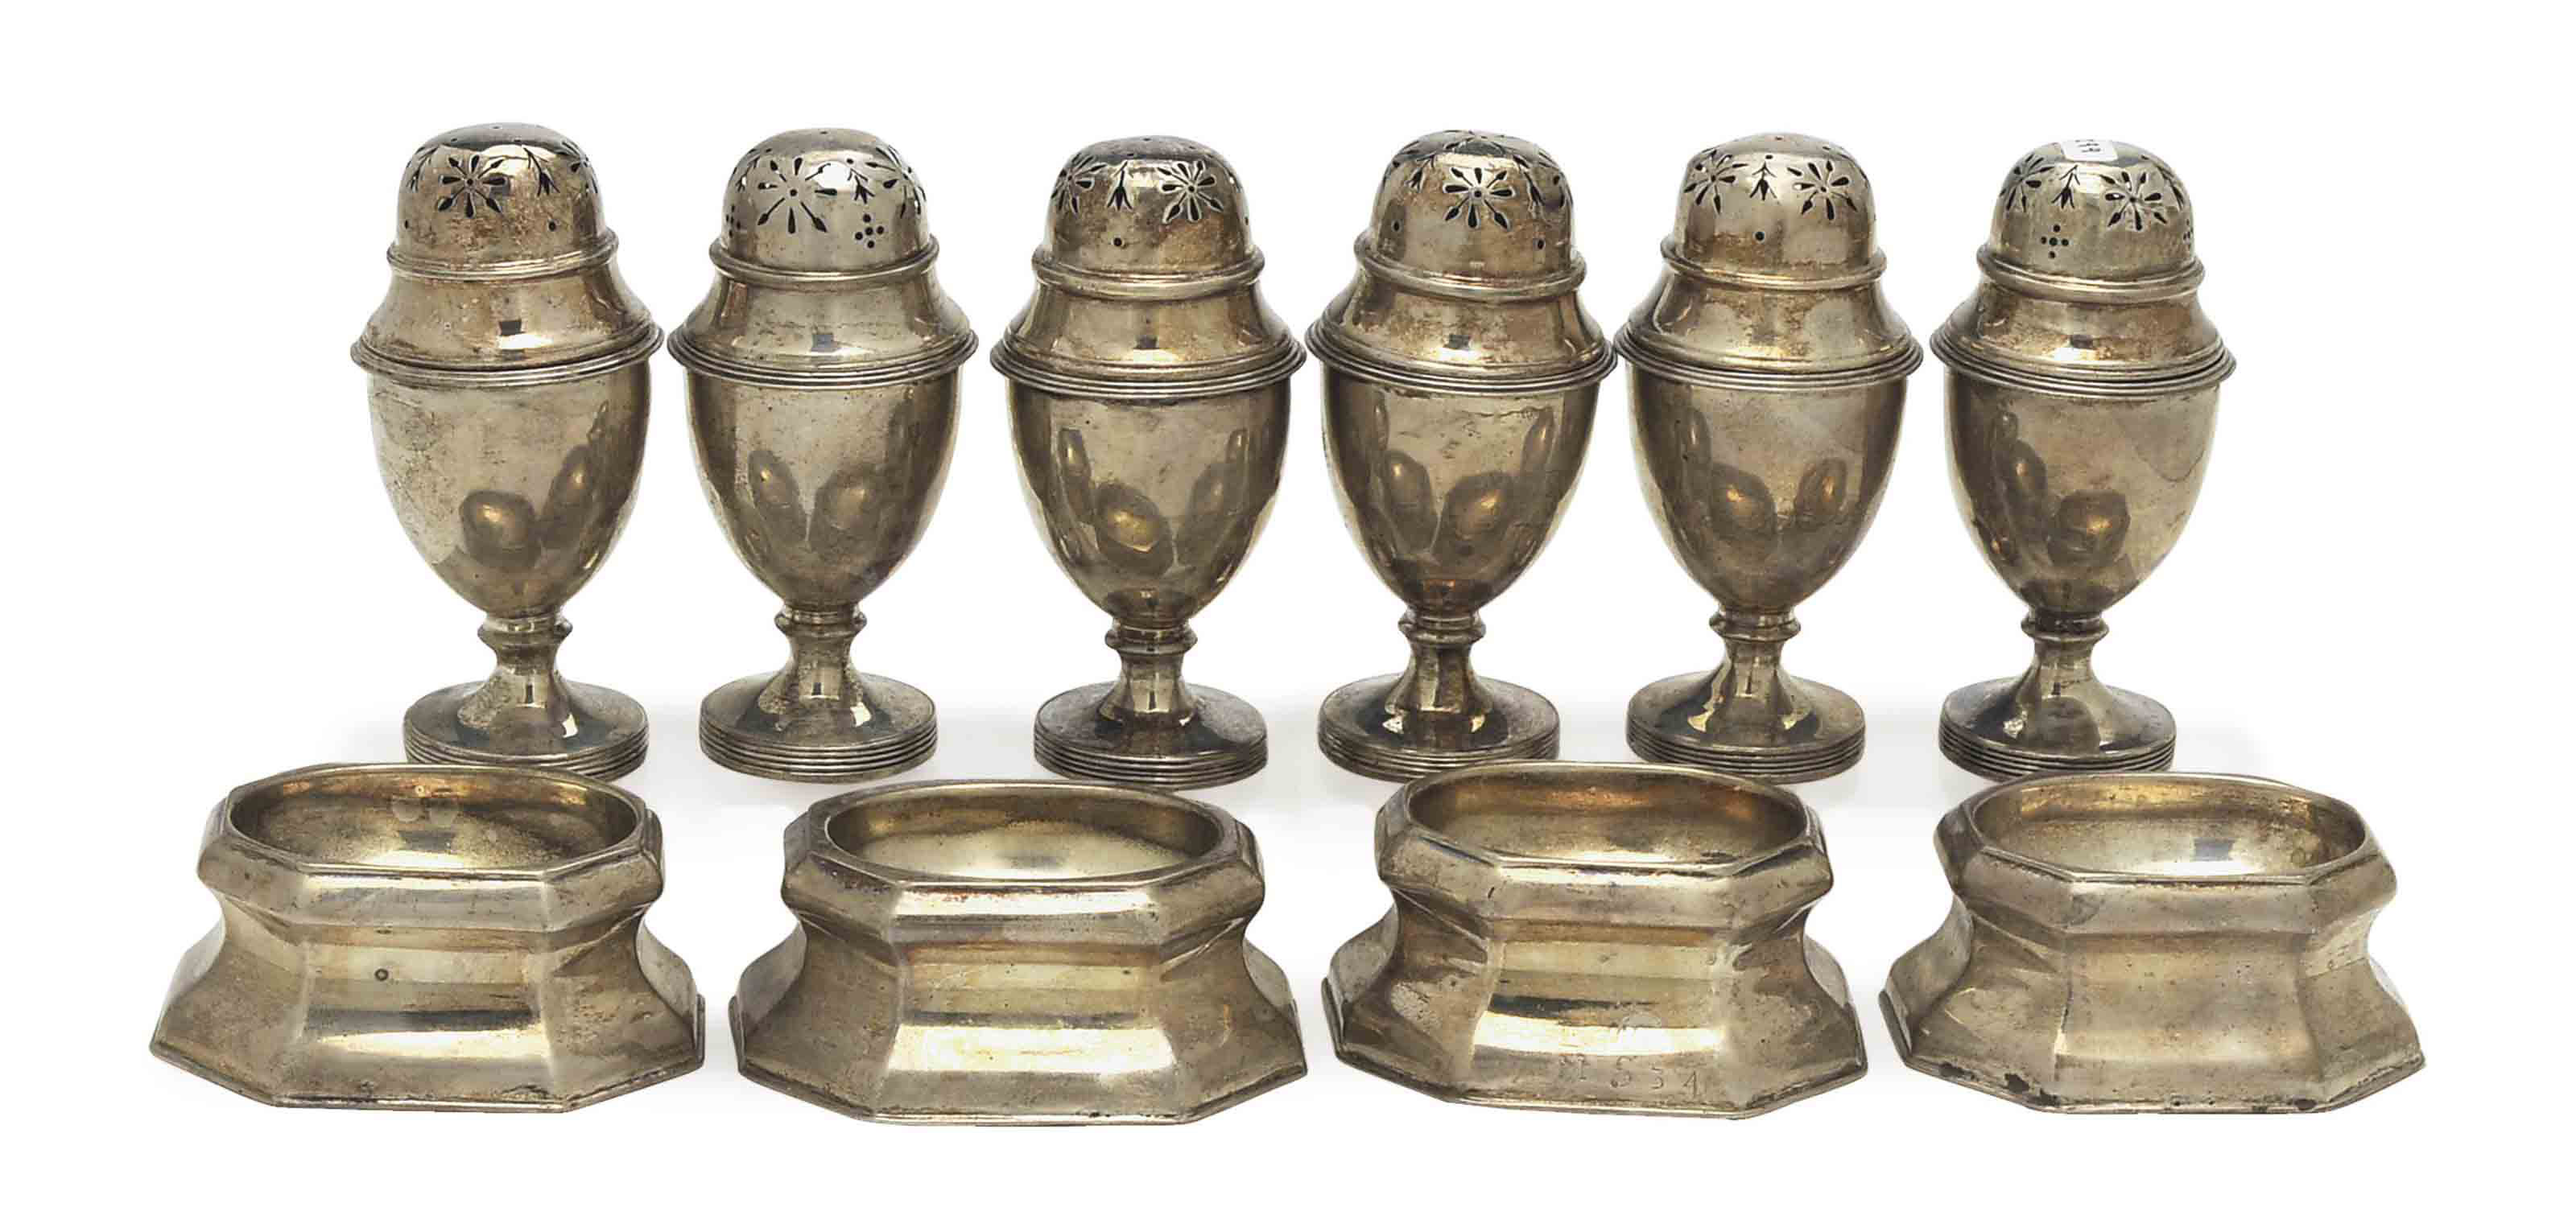 A SET OF SIX GEORGIAN CASTERS AND COVERS AND FOUR GEORGIAN SILVER TRENCHER SALTS,